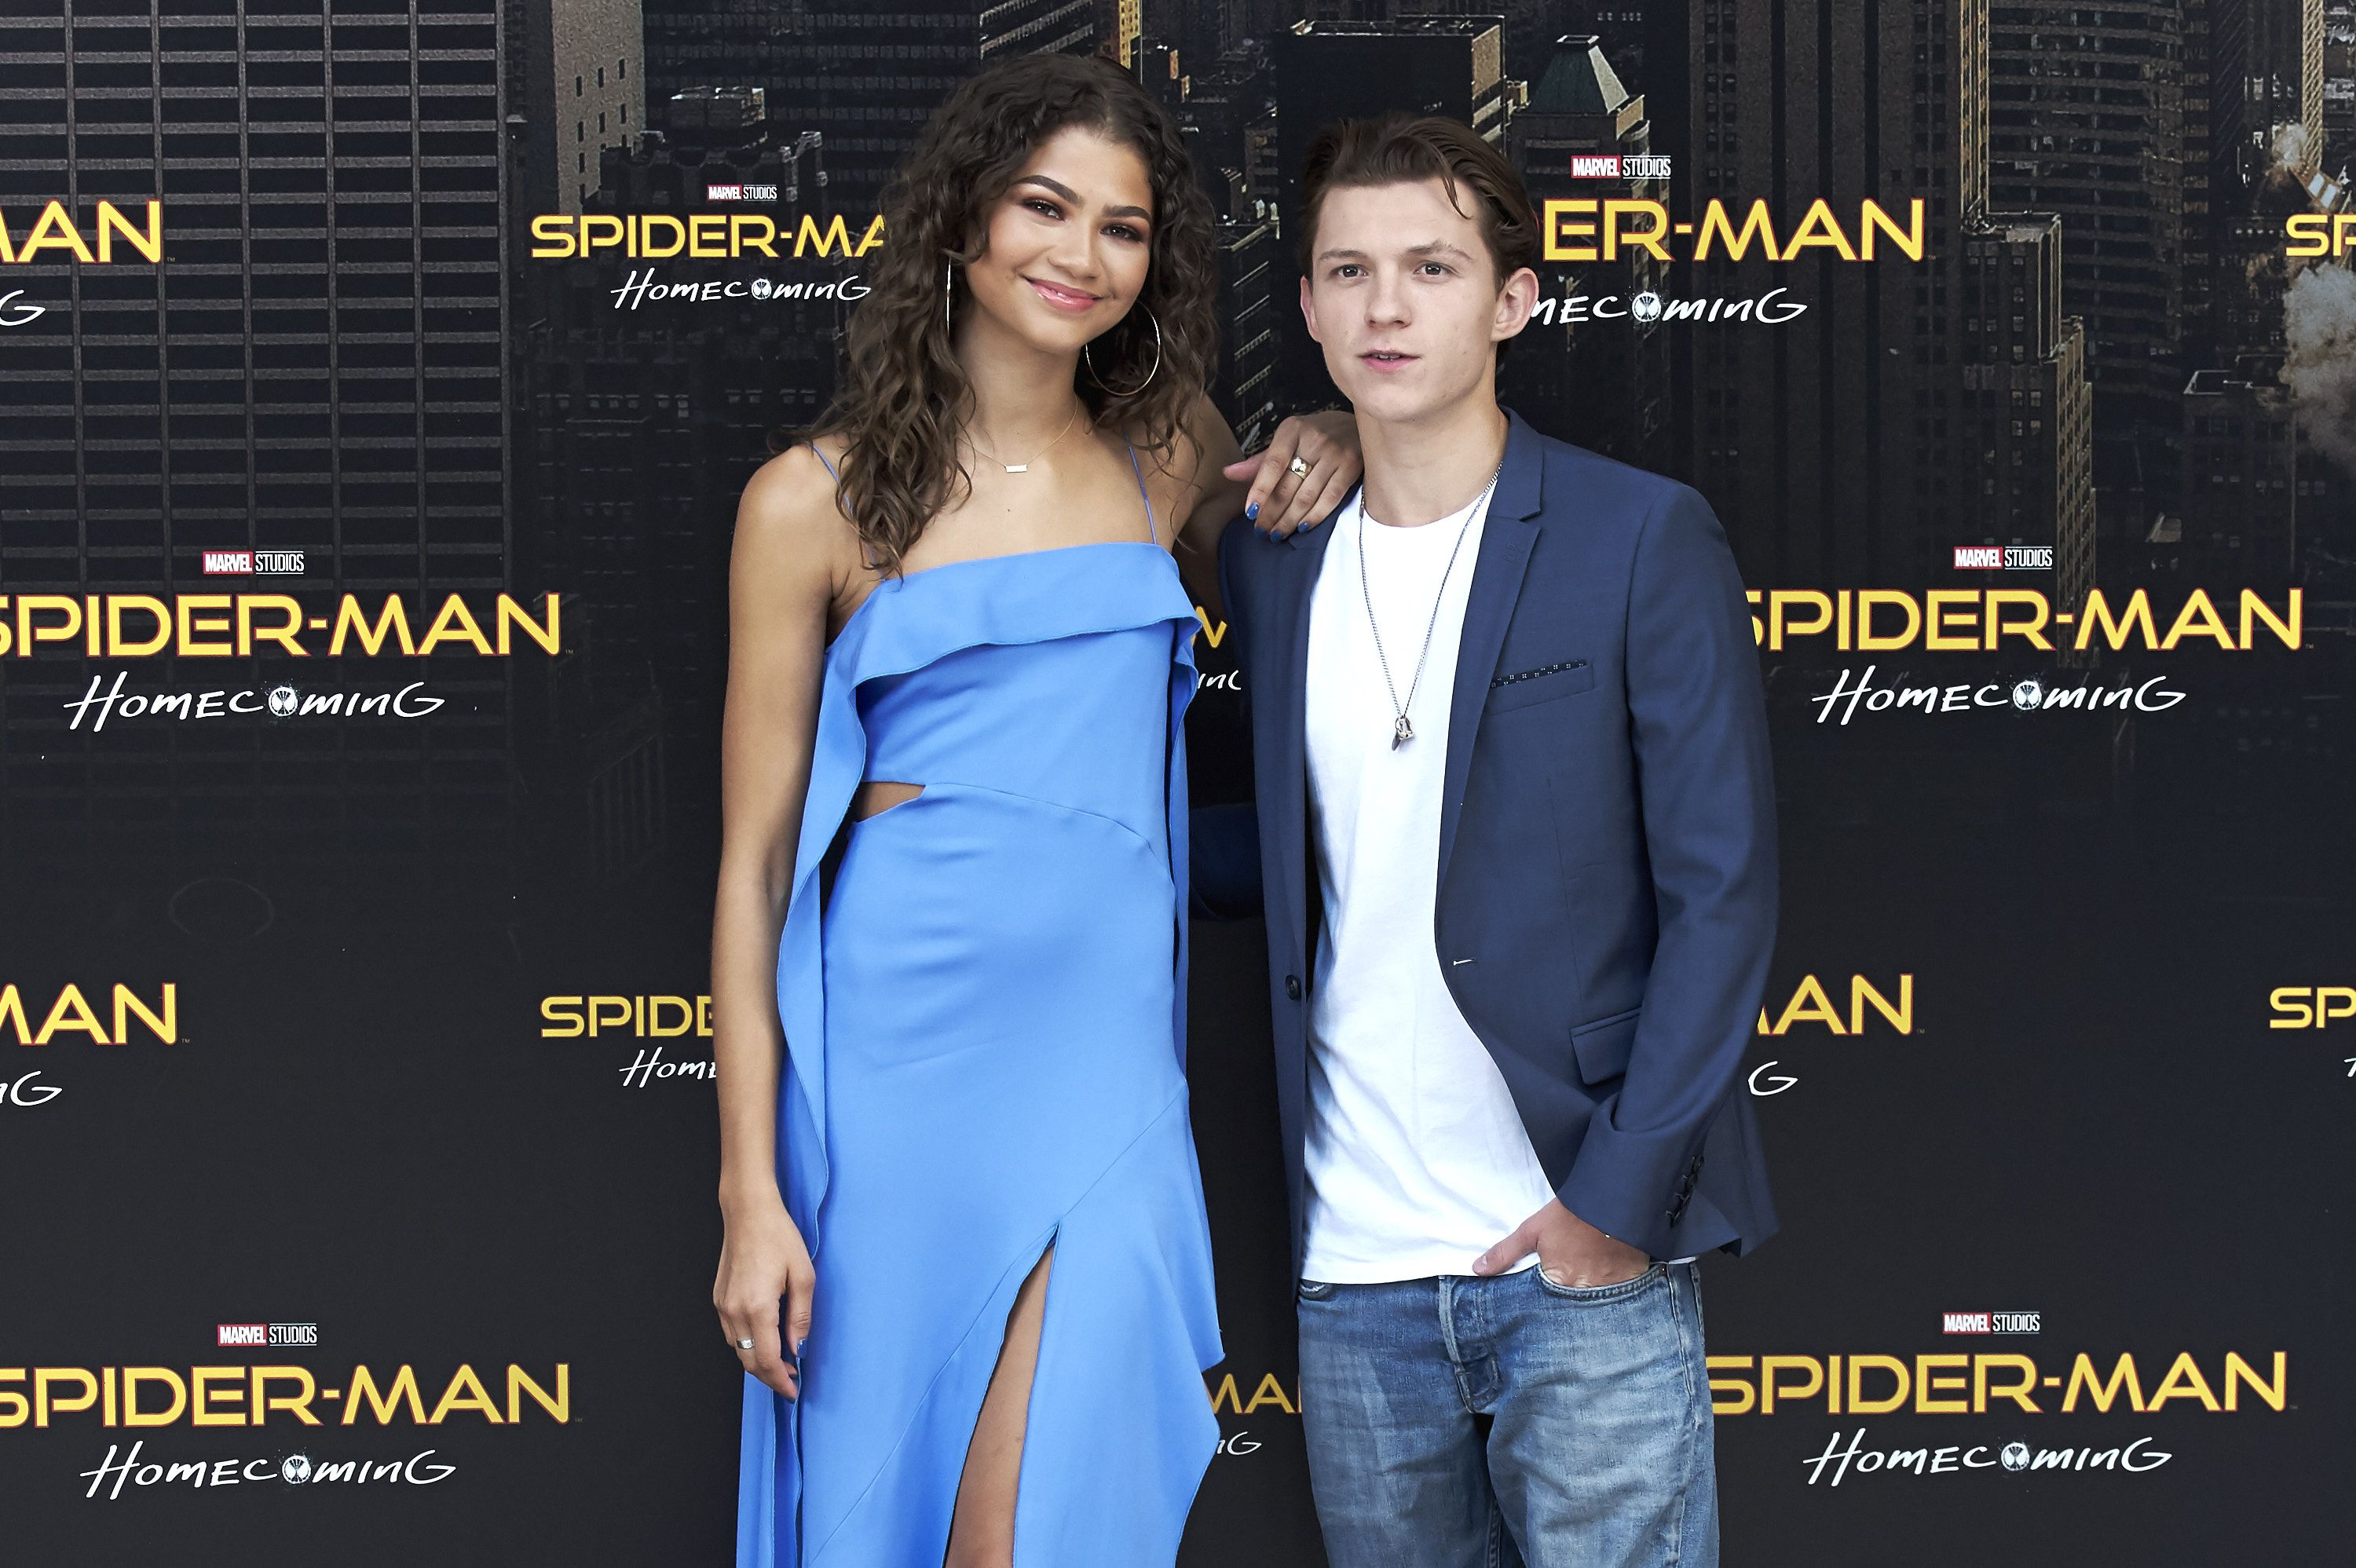 Zendaya and Tom Holland's Relationship Confirmed By Skai